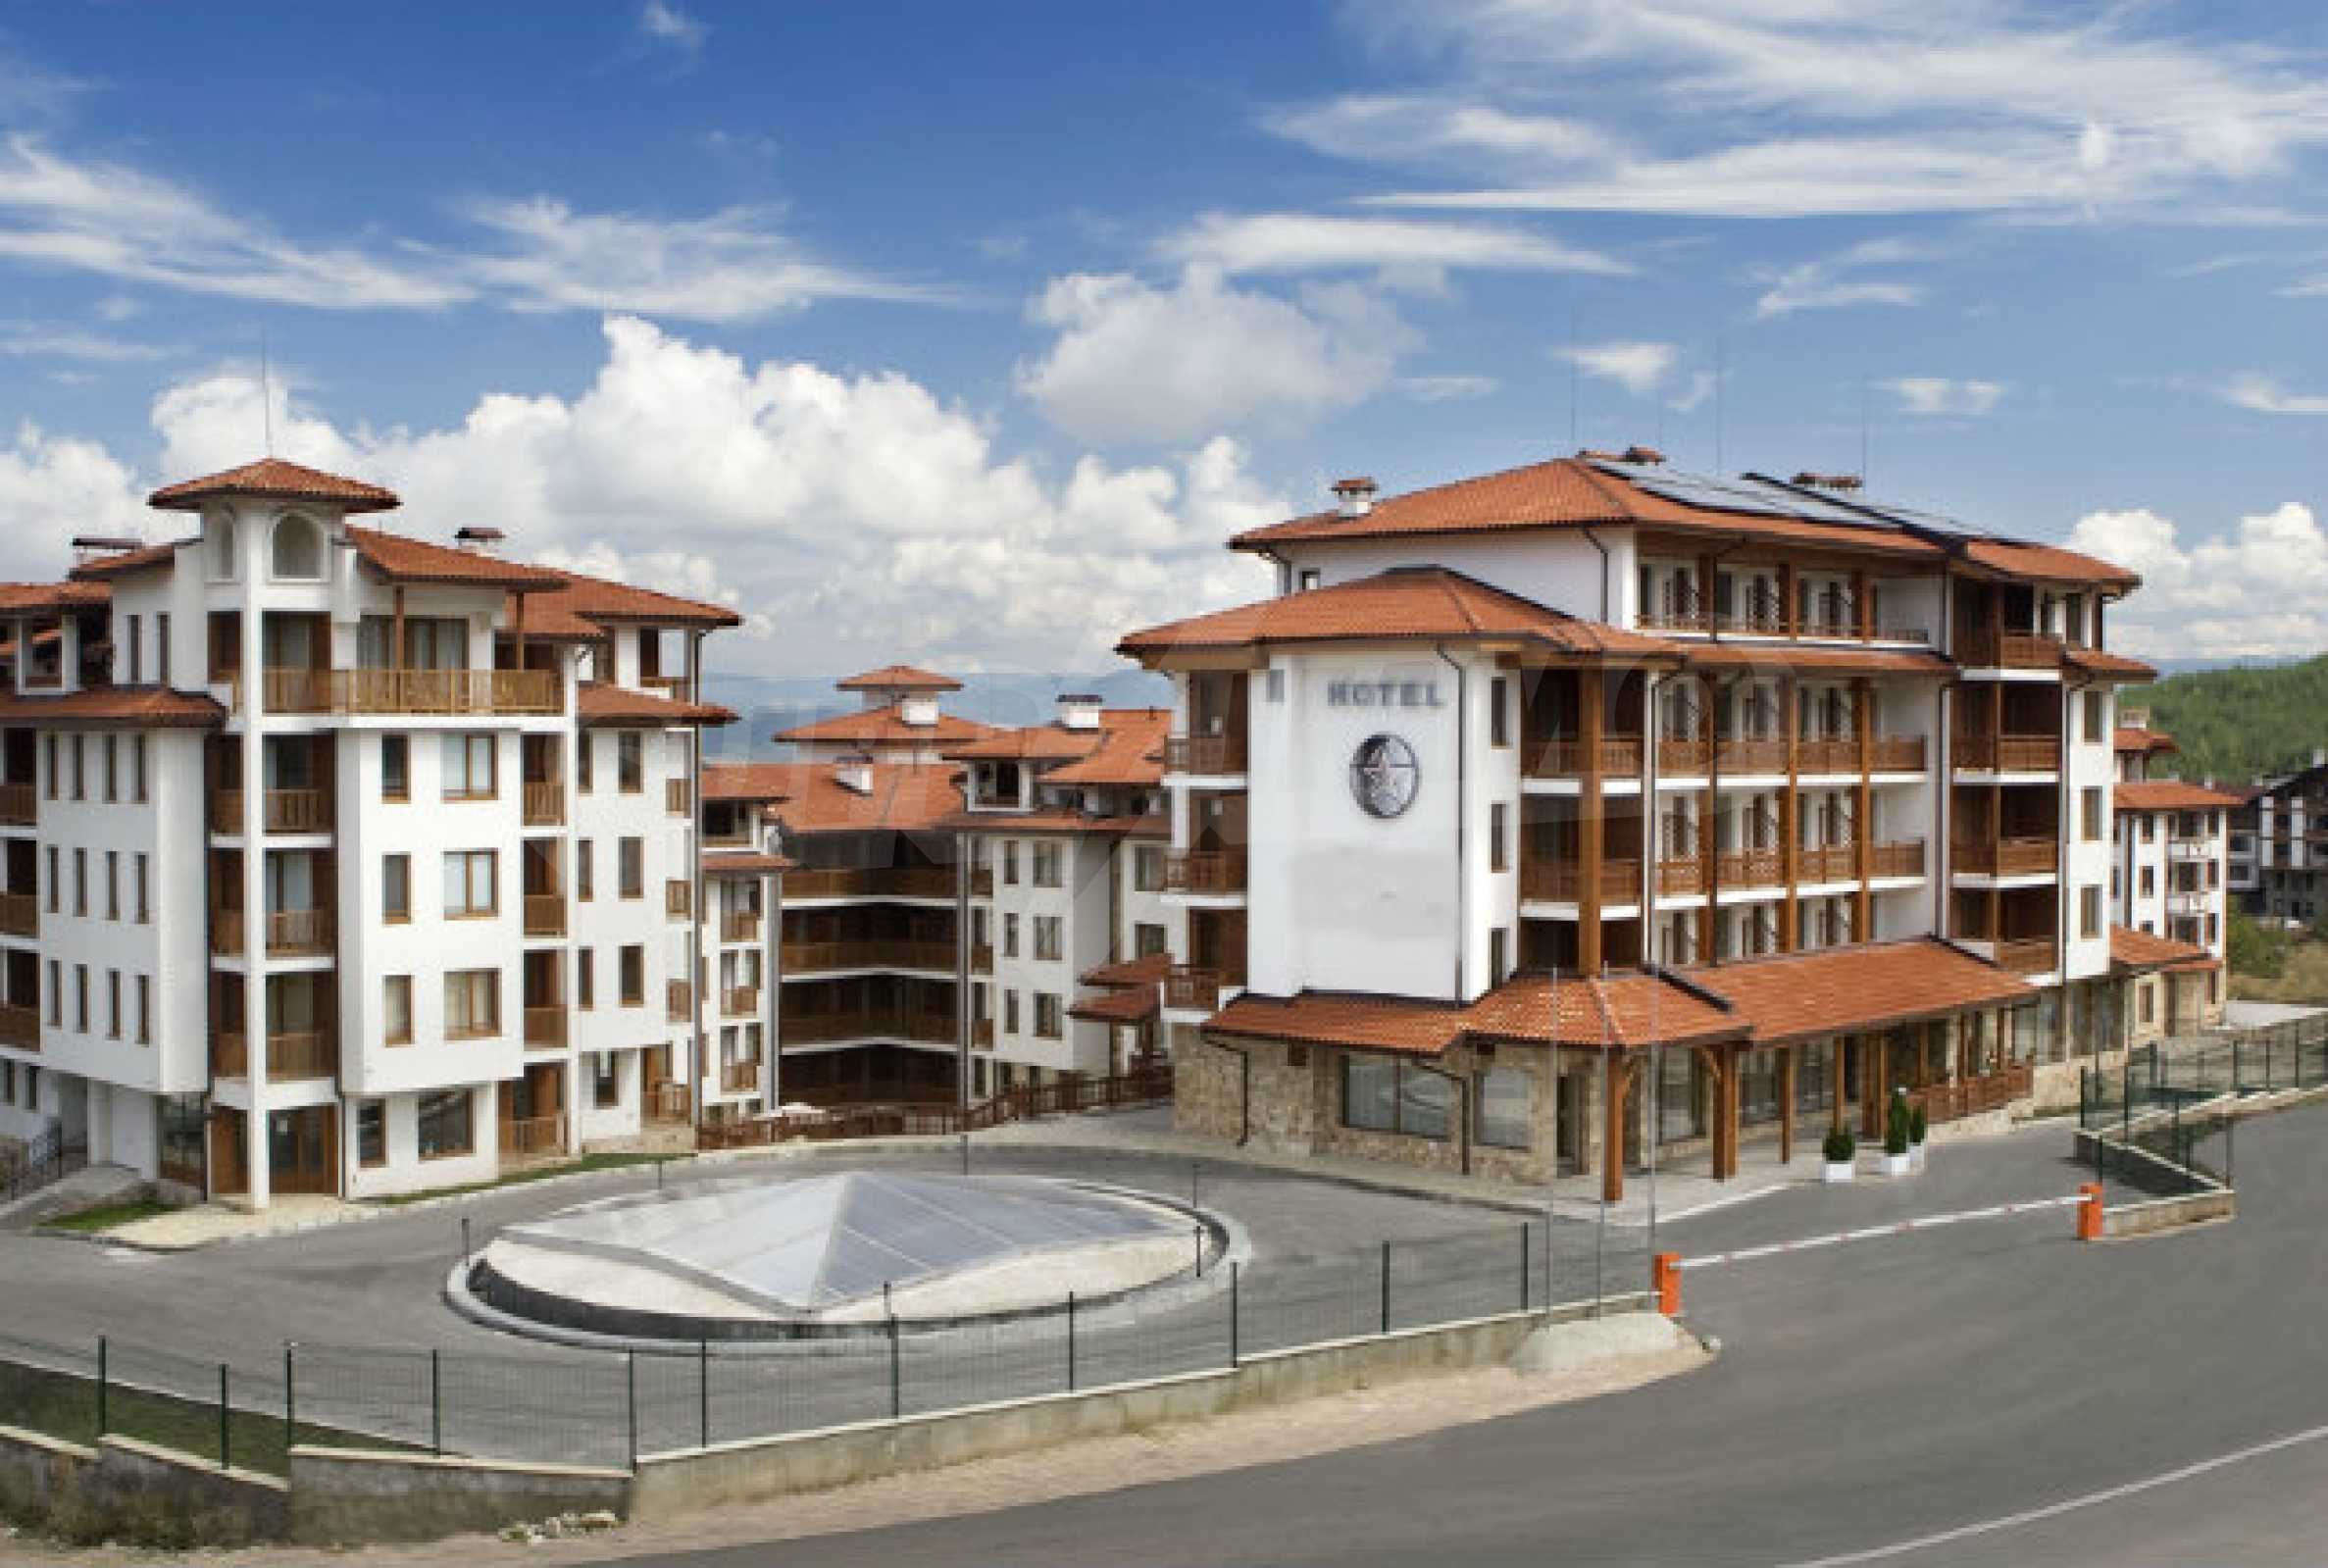 Hotel for sale in the ski resort of Bansko